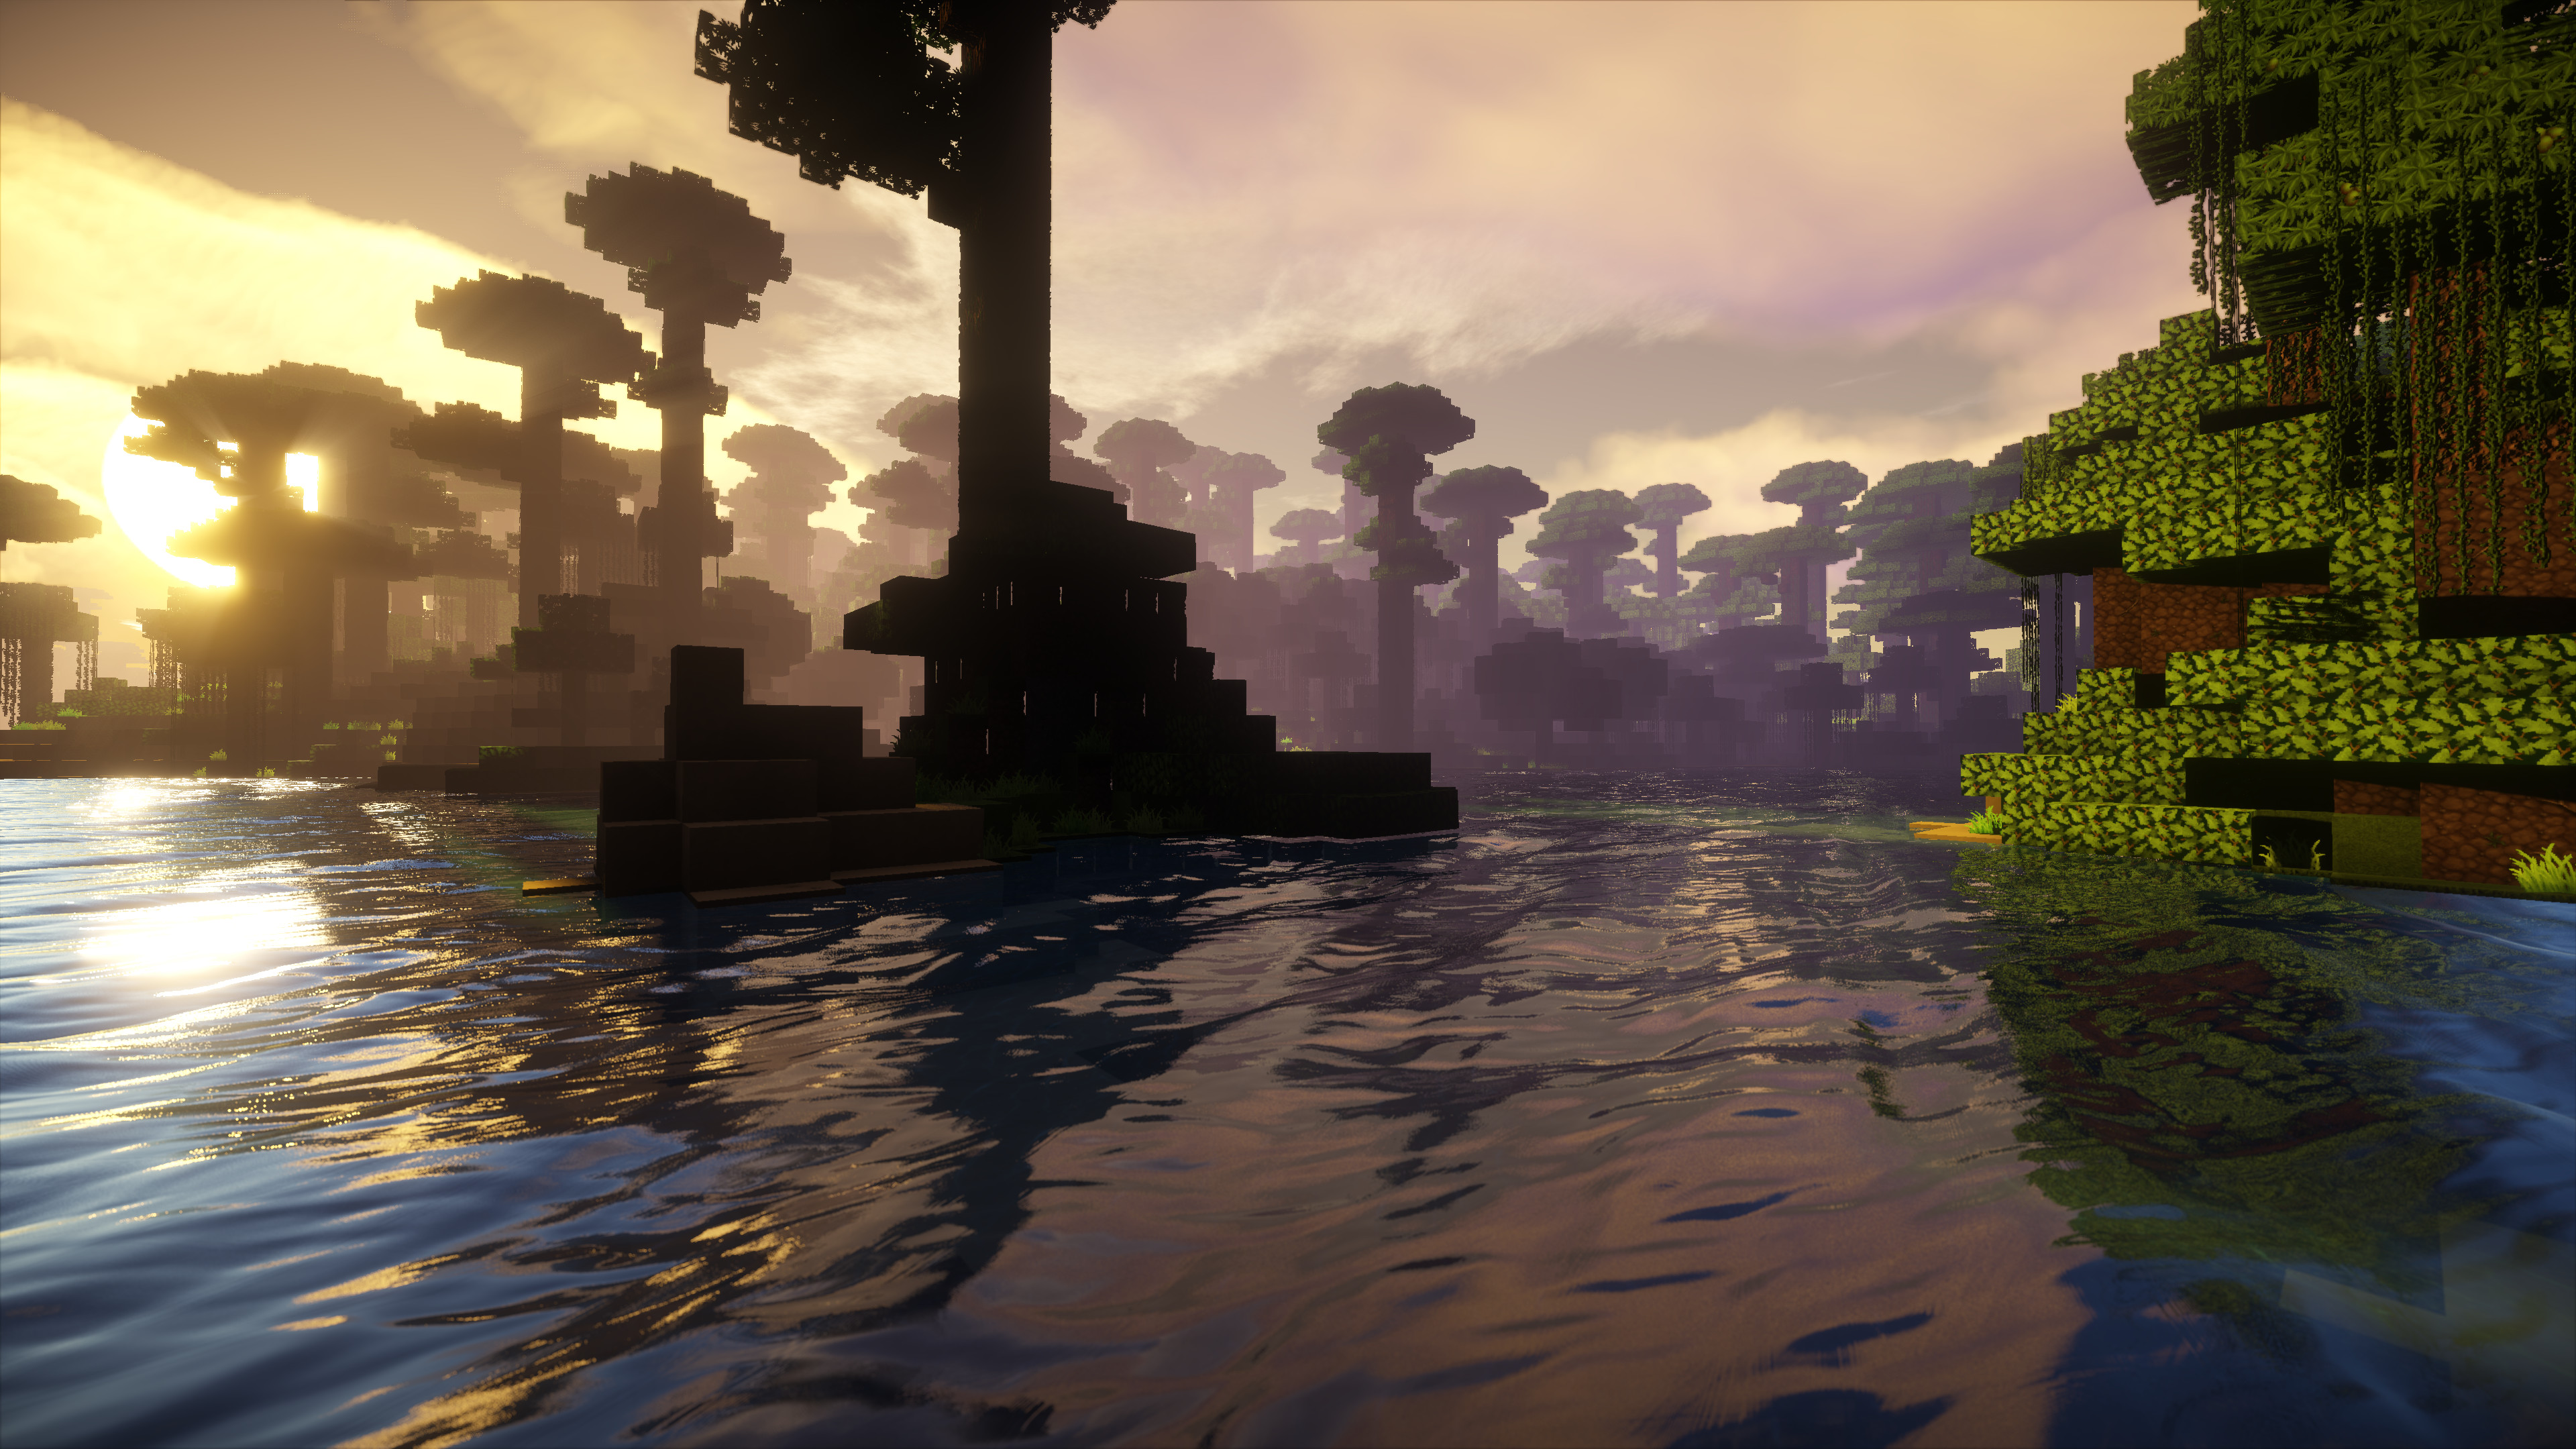 HD Wallpapers Of Minecraft (78+ Images